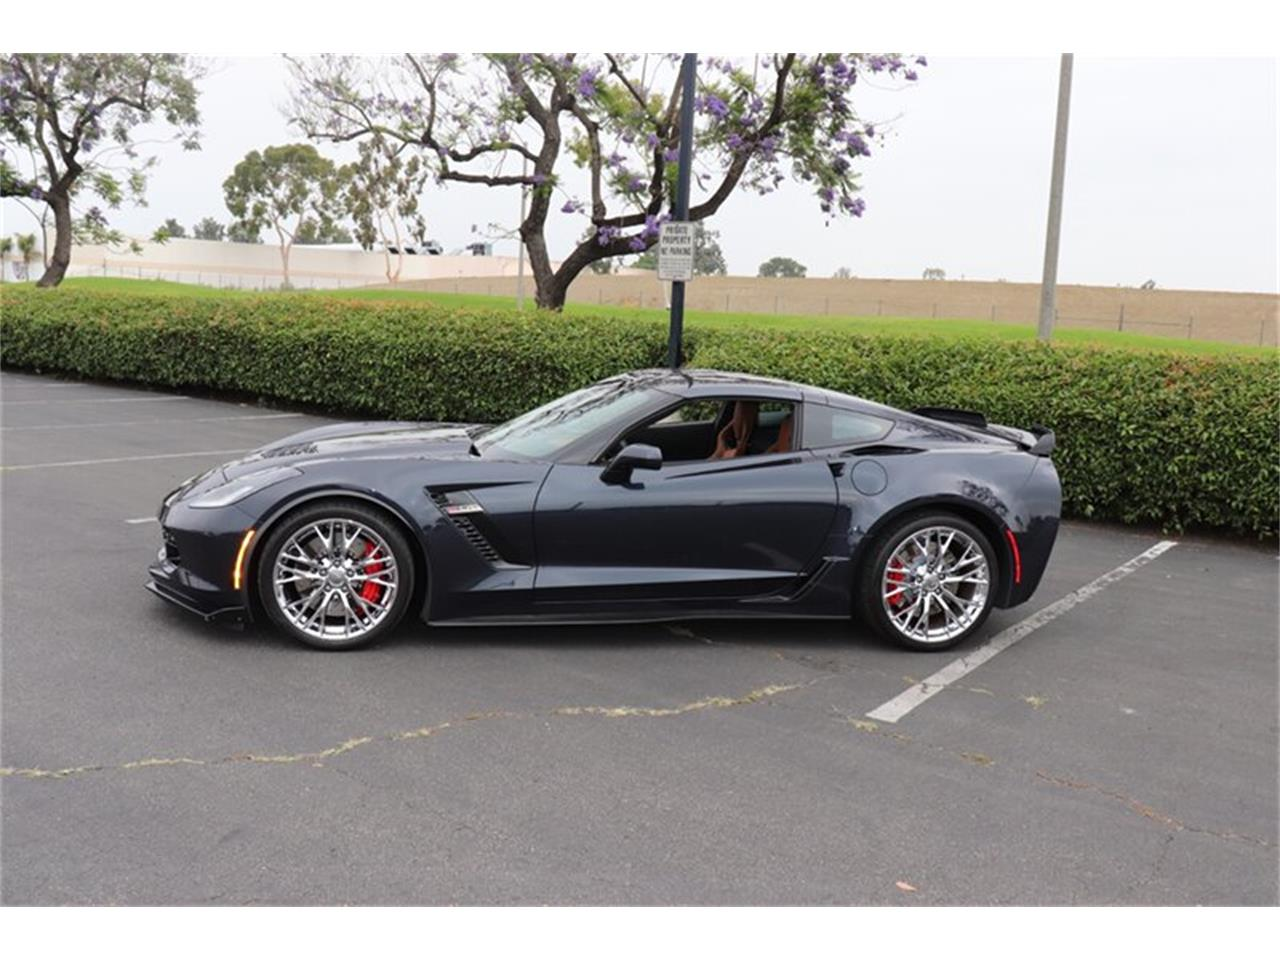 Large Picture of 2015 Chevrolet Corvette Z06 located in California Offered by West Coast Corvettes - QFLK